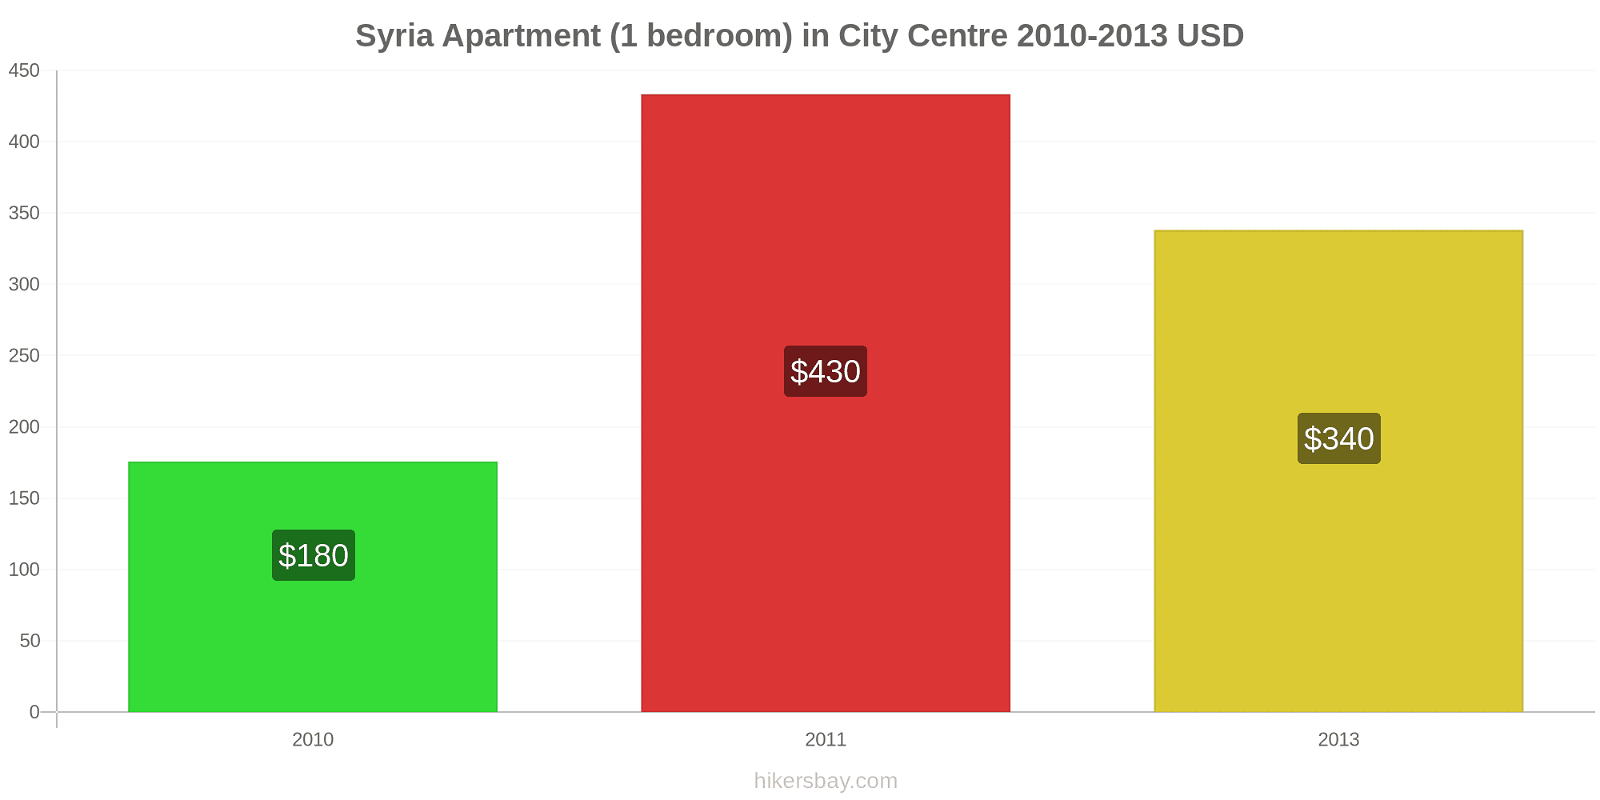 Syria price changes Apartment (1 bedroom) in City Centre hikersbay.com